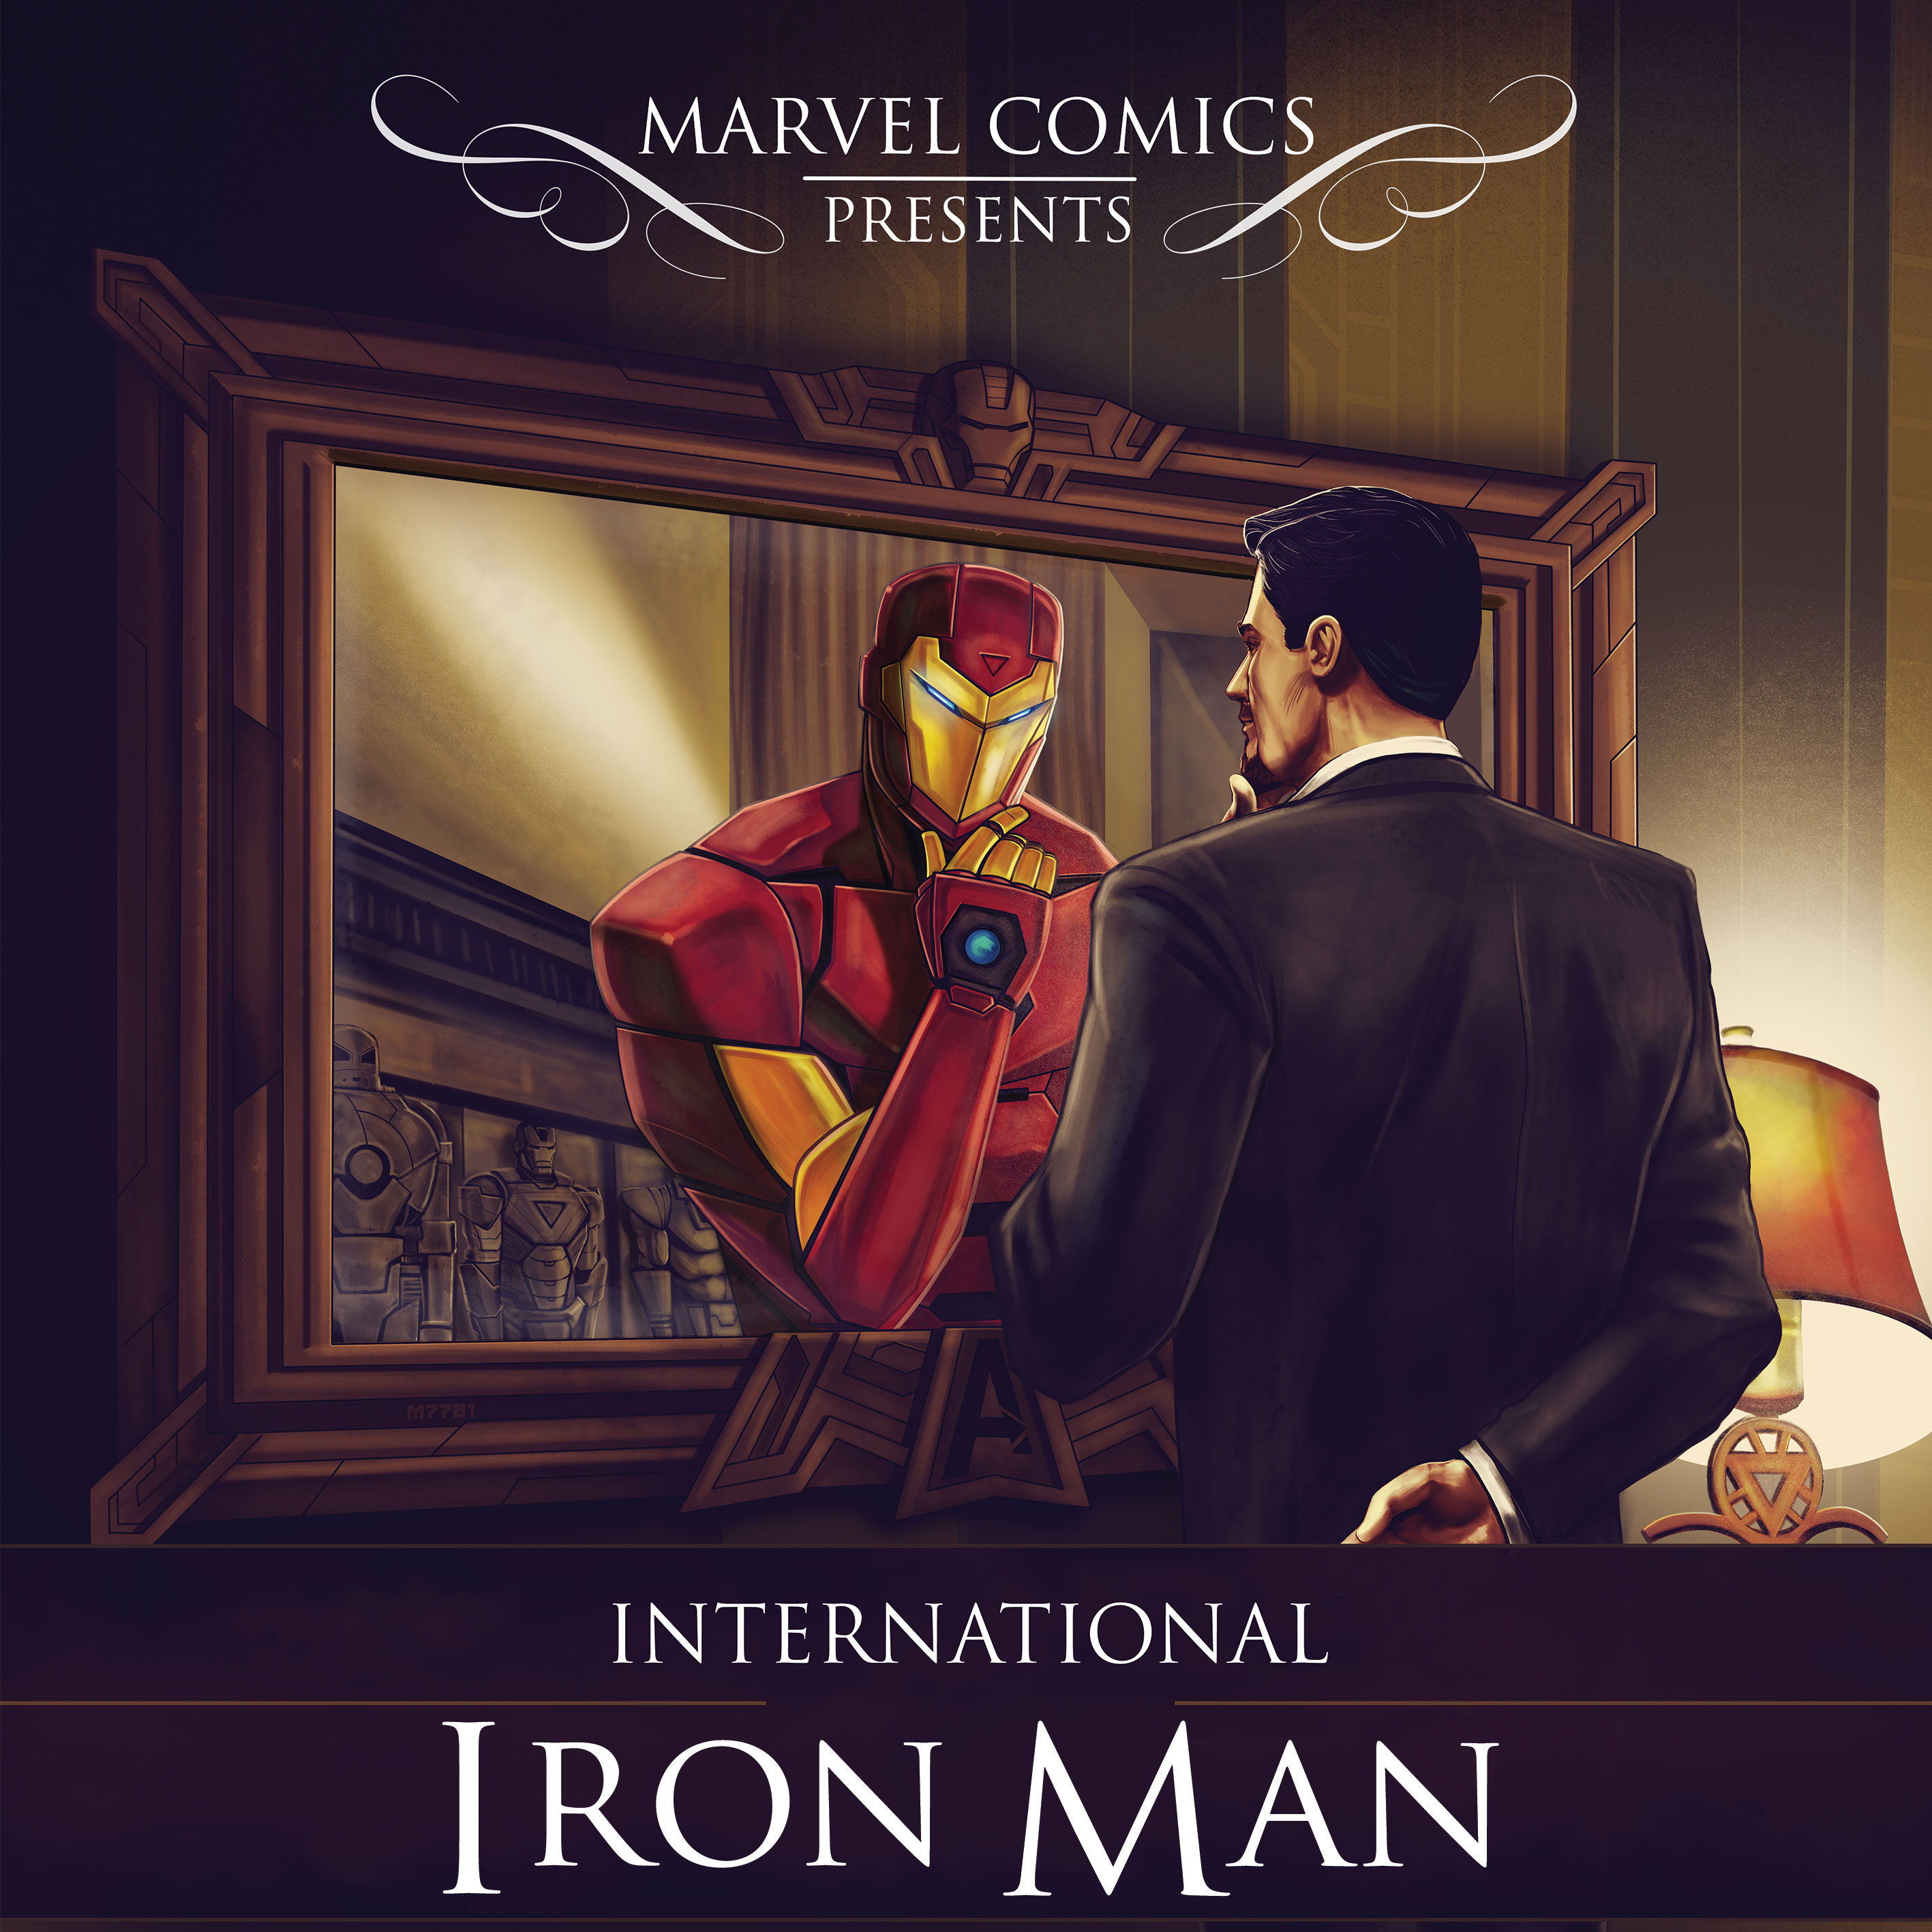 International Iron Man #1 Cover